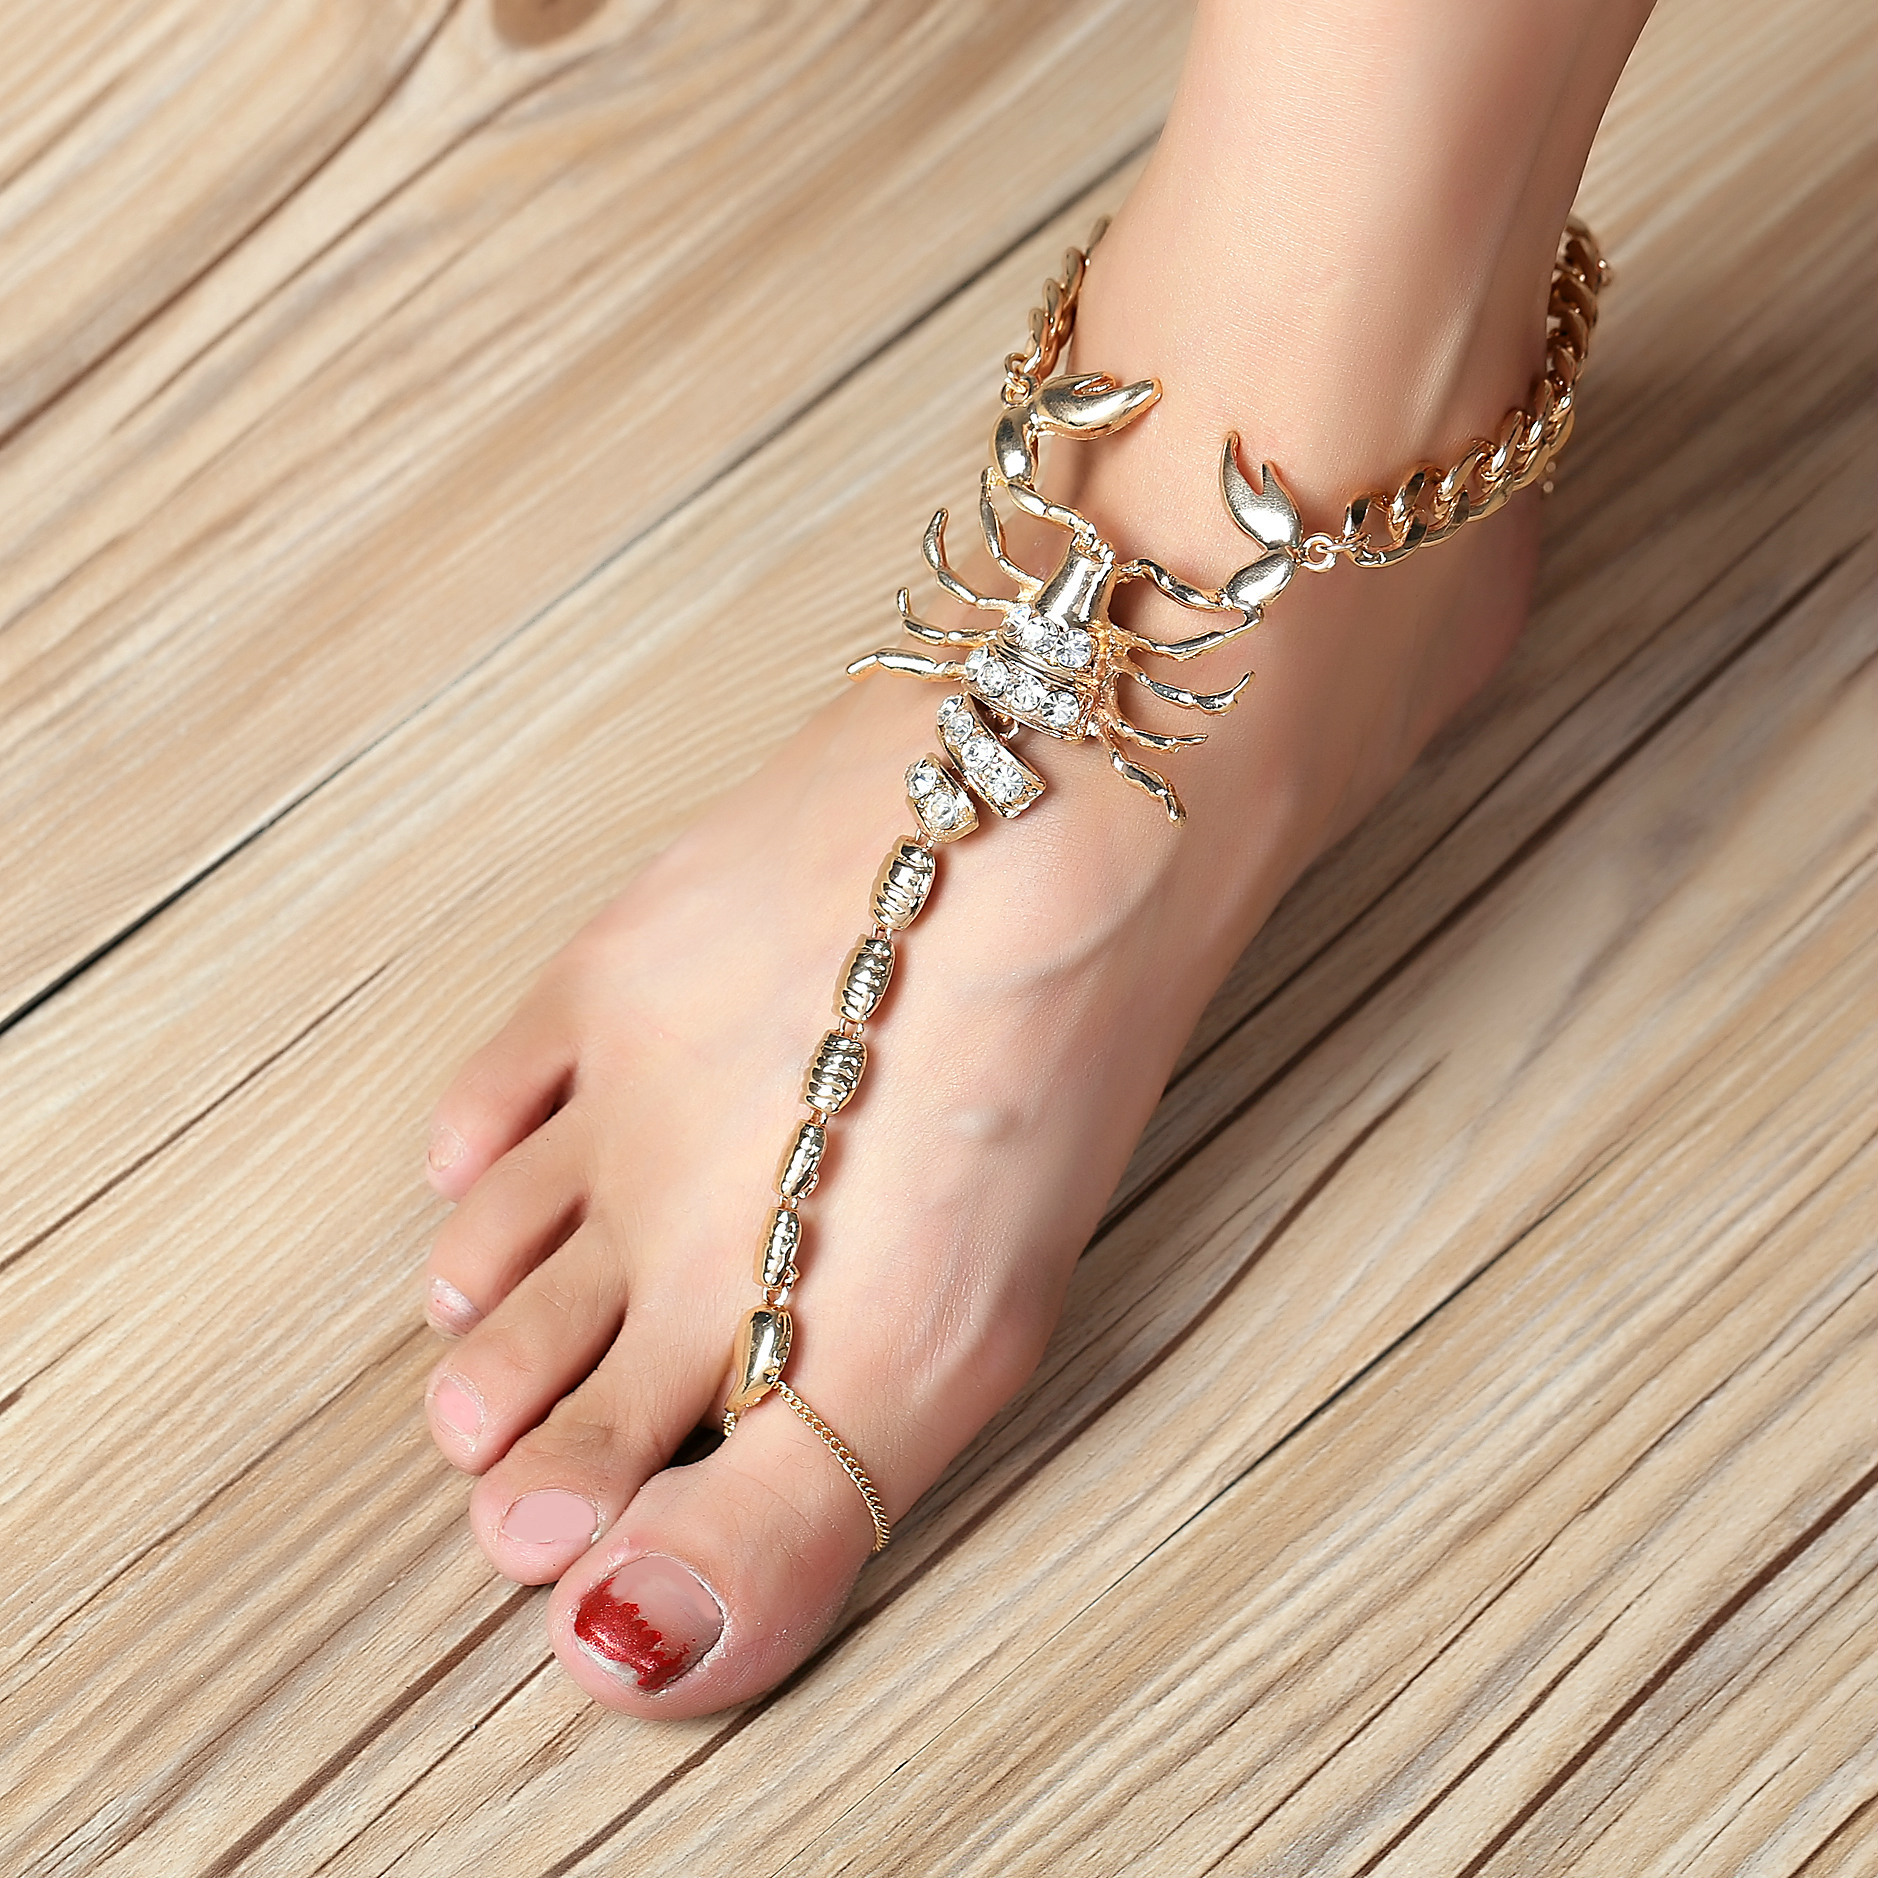 myshoplah chain crystal anklets toe ring fine with anklet sandal foot barefoot wedding and beach rhinestone jewelry rings